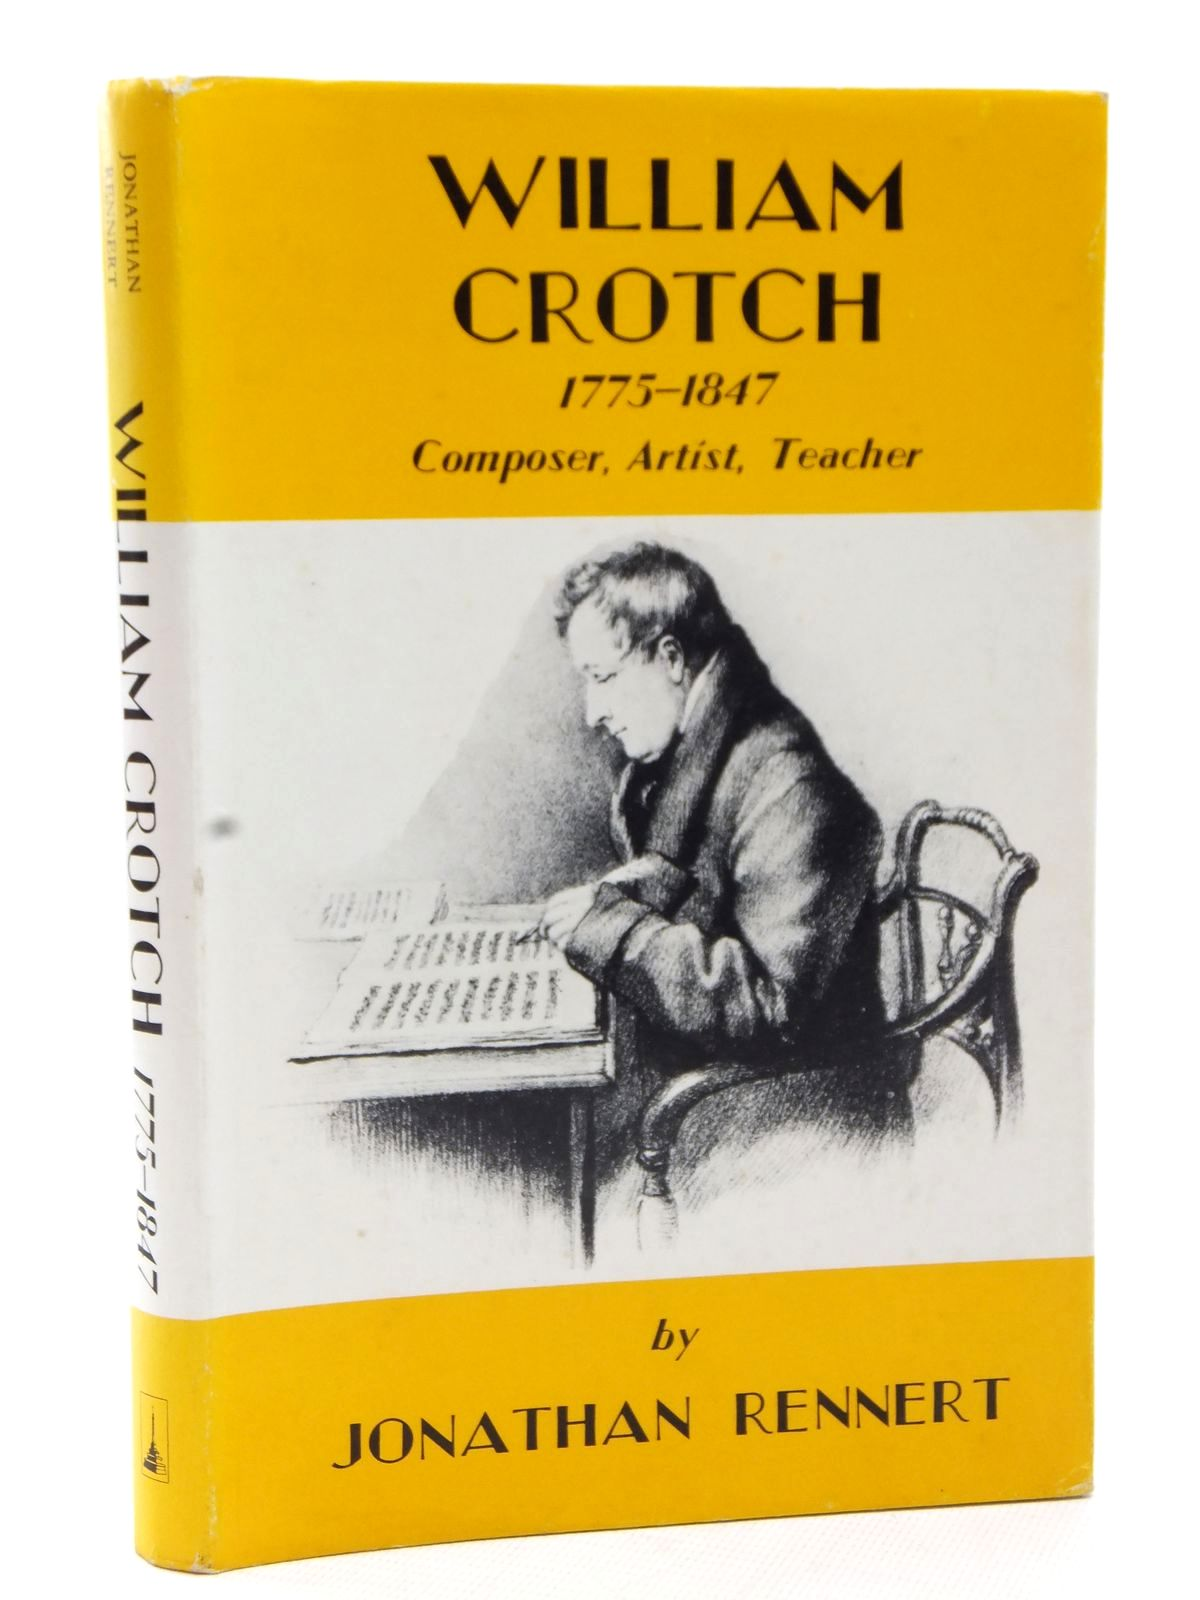 Photo of WILLIAM CROTCH 1775-1847 COMPOSER, ARTIST, TEACHER written by Rennert, Jonathan published by Terence Dalton Limited (STOCK CODE: 1609128)  for sale by Stella & Rose's Books